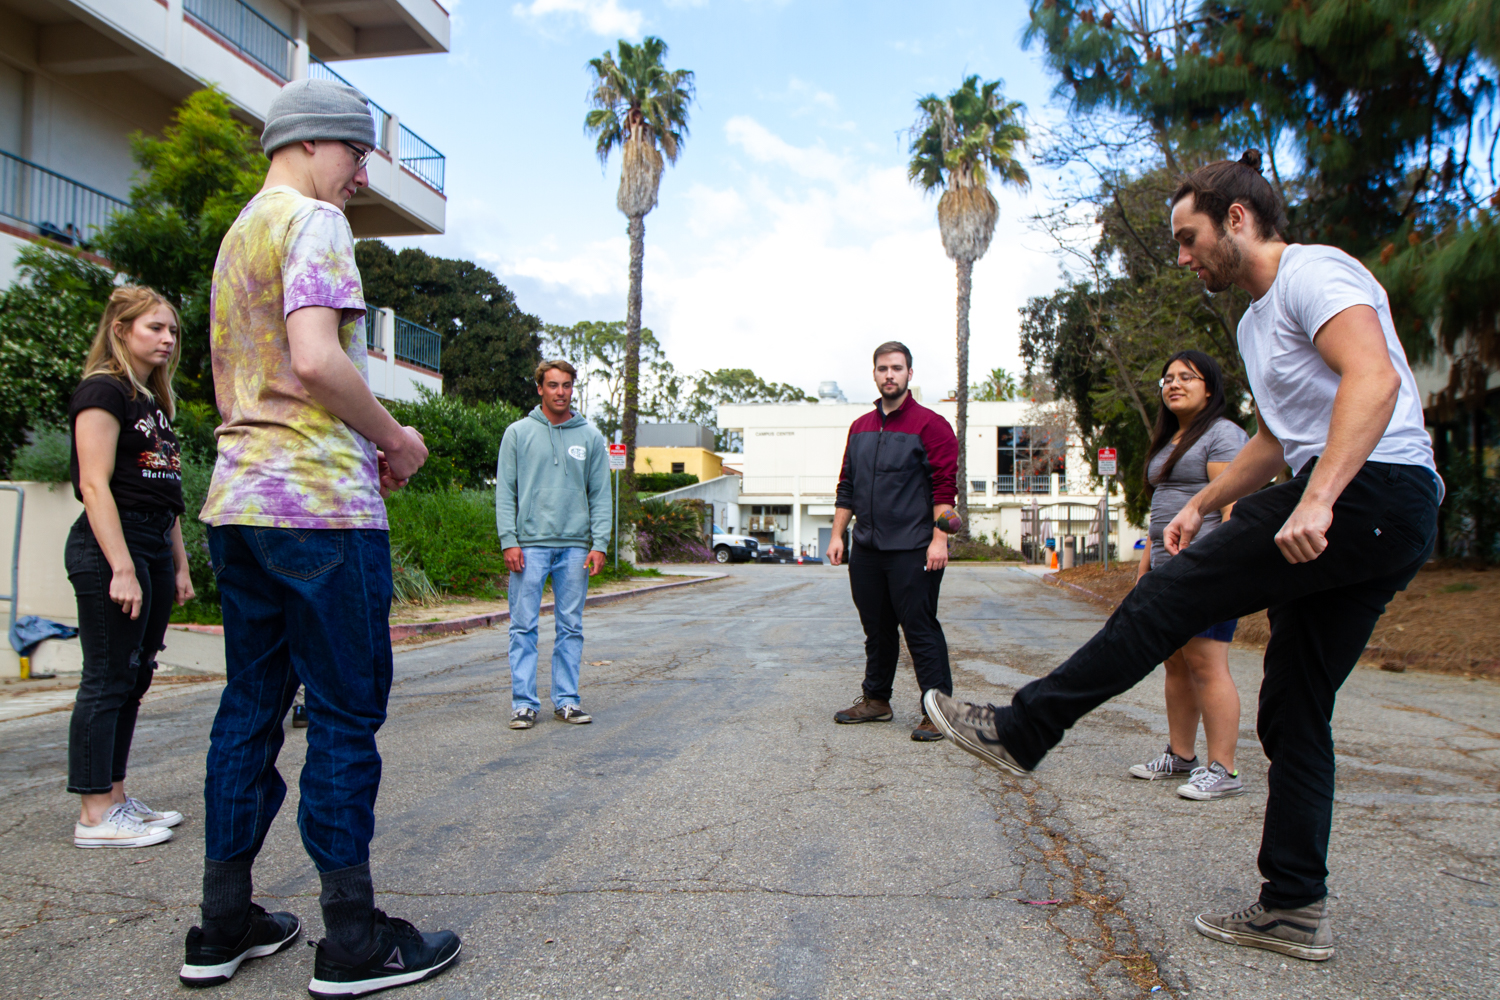 President of the Hacky Sack Club Ben Early, right, kicks the footbag while the other members, from left, Alex Sasich, Elijah Akia, Dylan Rief, Taji Tanner, and Rocio Reyes get ready for the ball to be passed around outside the Earth and Biological Sciences Building on Thursday, March 21, 2019, at City College in Santa Barbara, Calif. The Hacky Sack Club meets 4 p.m. on Thursdays.